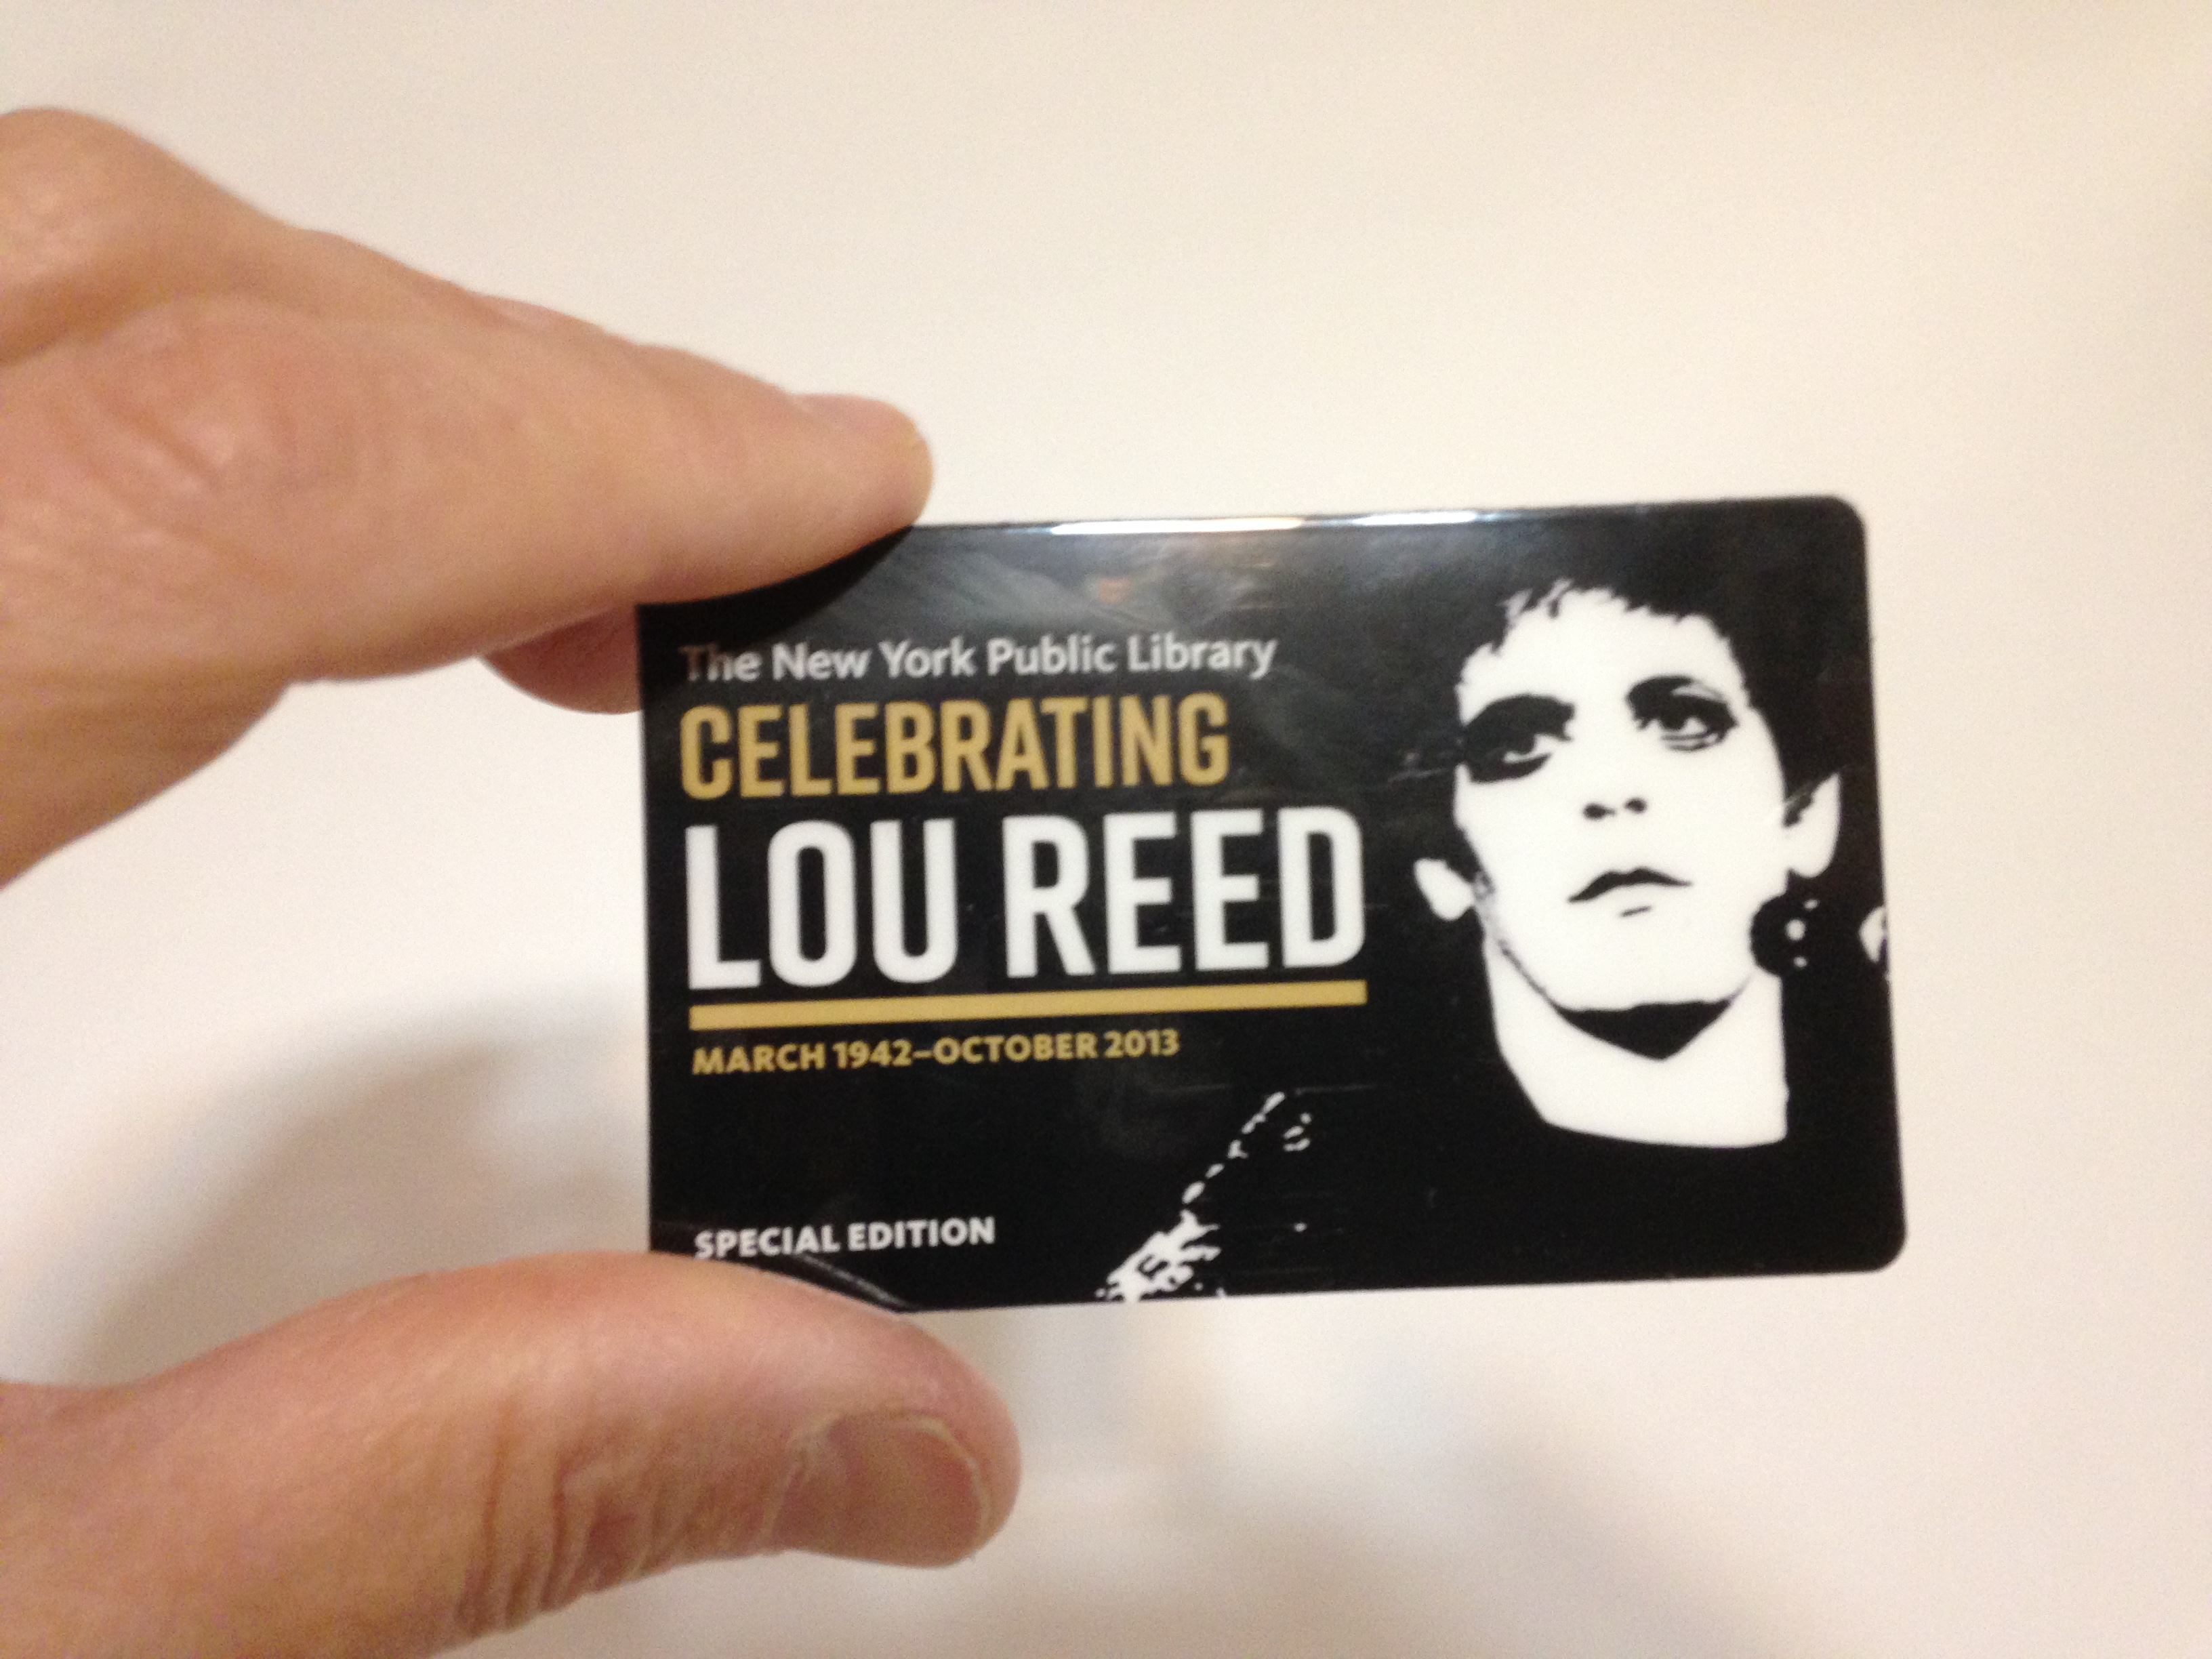 Lou Reed library card